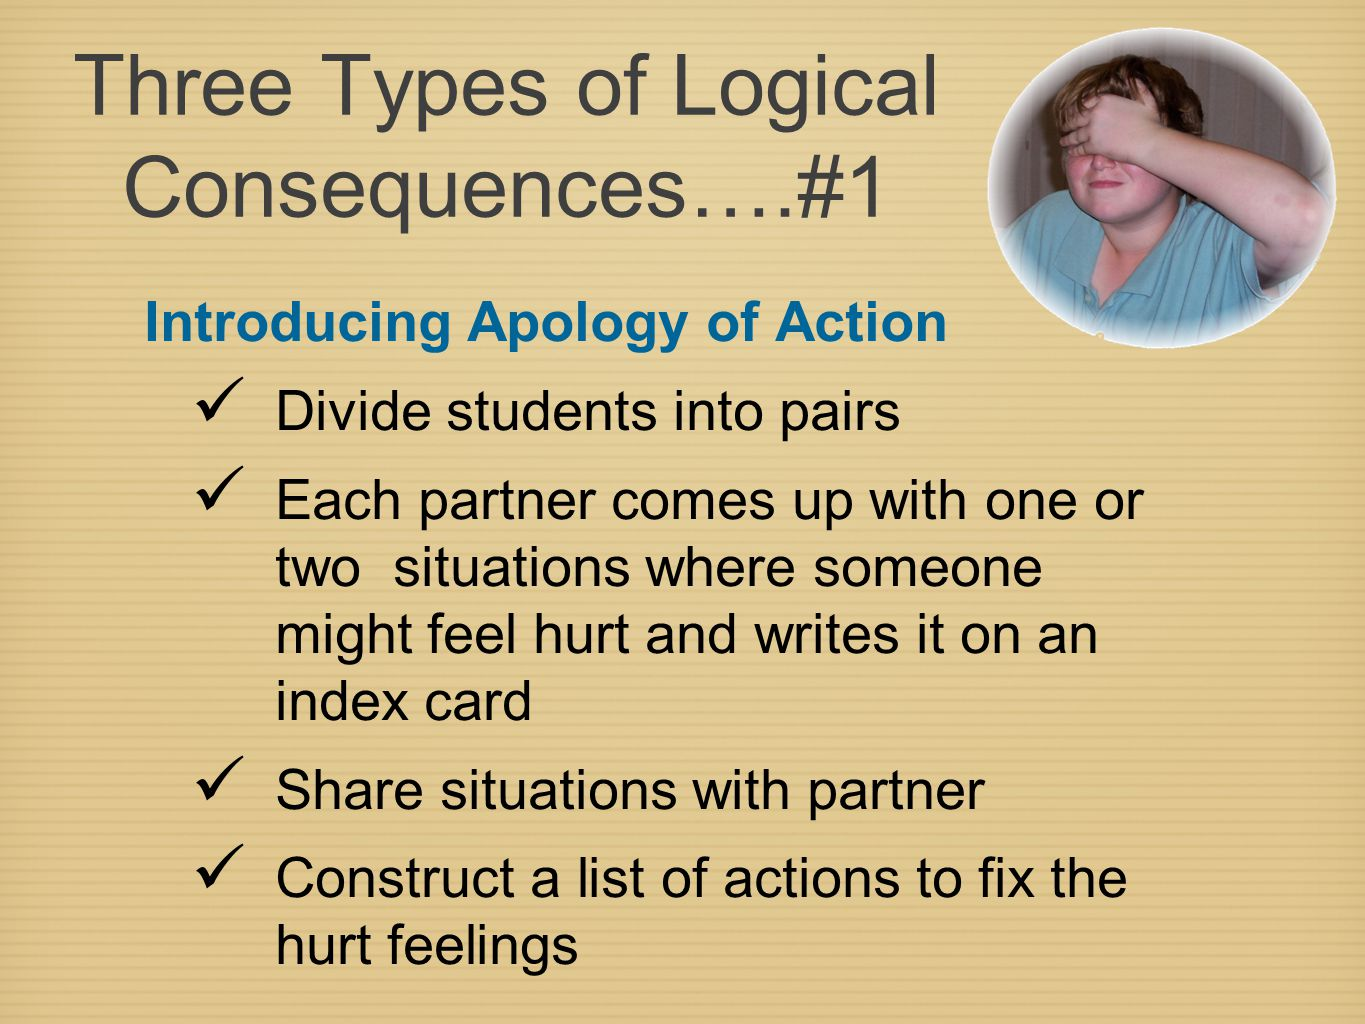 Three Types of Logical Consequences….#1 Introducing Apology of Action Divide students into pairs Each partner comes up with one or two situations where someone might feel hurt and writes it on an index card Share situations with partner Construct a list of actions to fix the hurt feelings